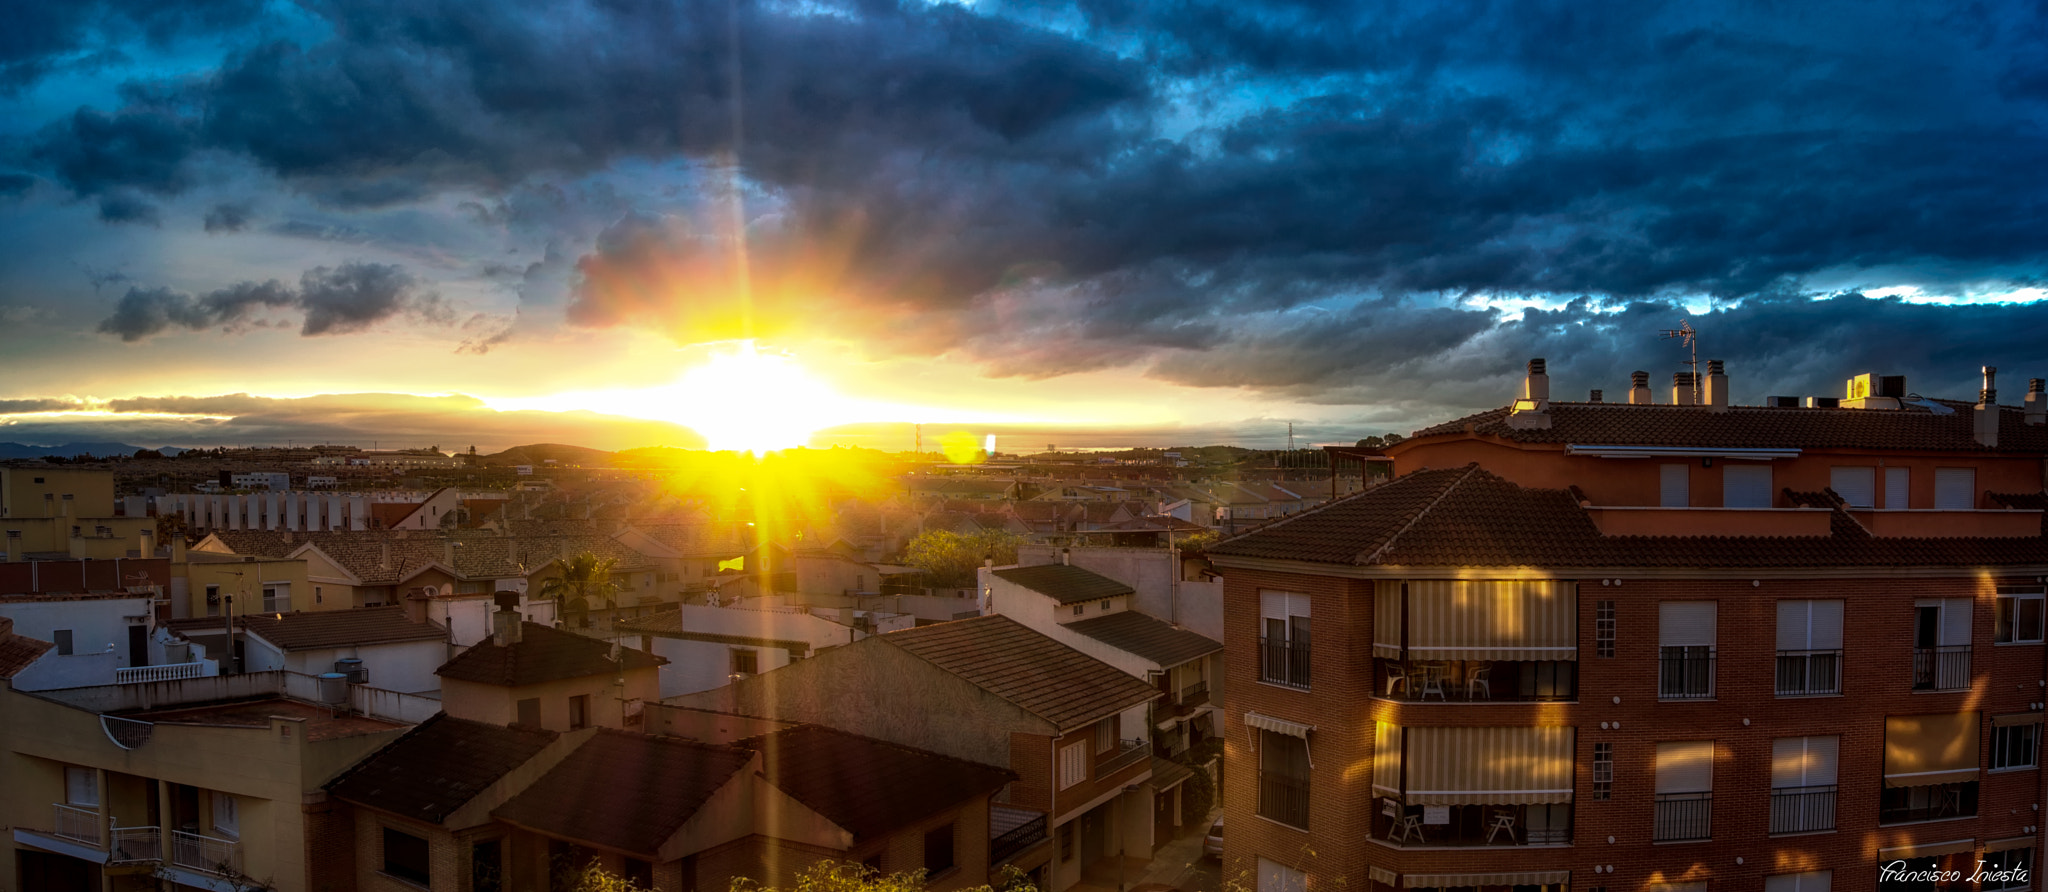 Photograph From my window by Francisco Iniesta on 500px